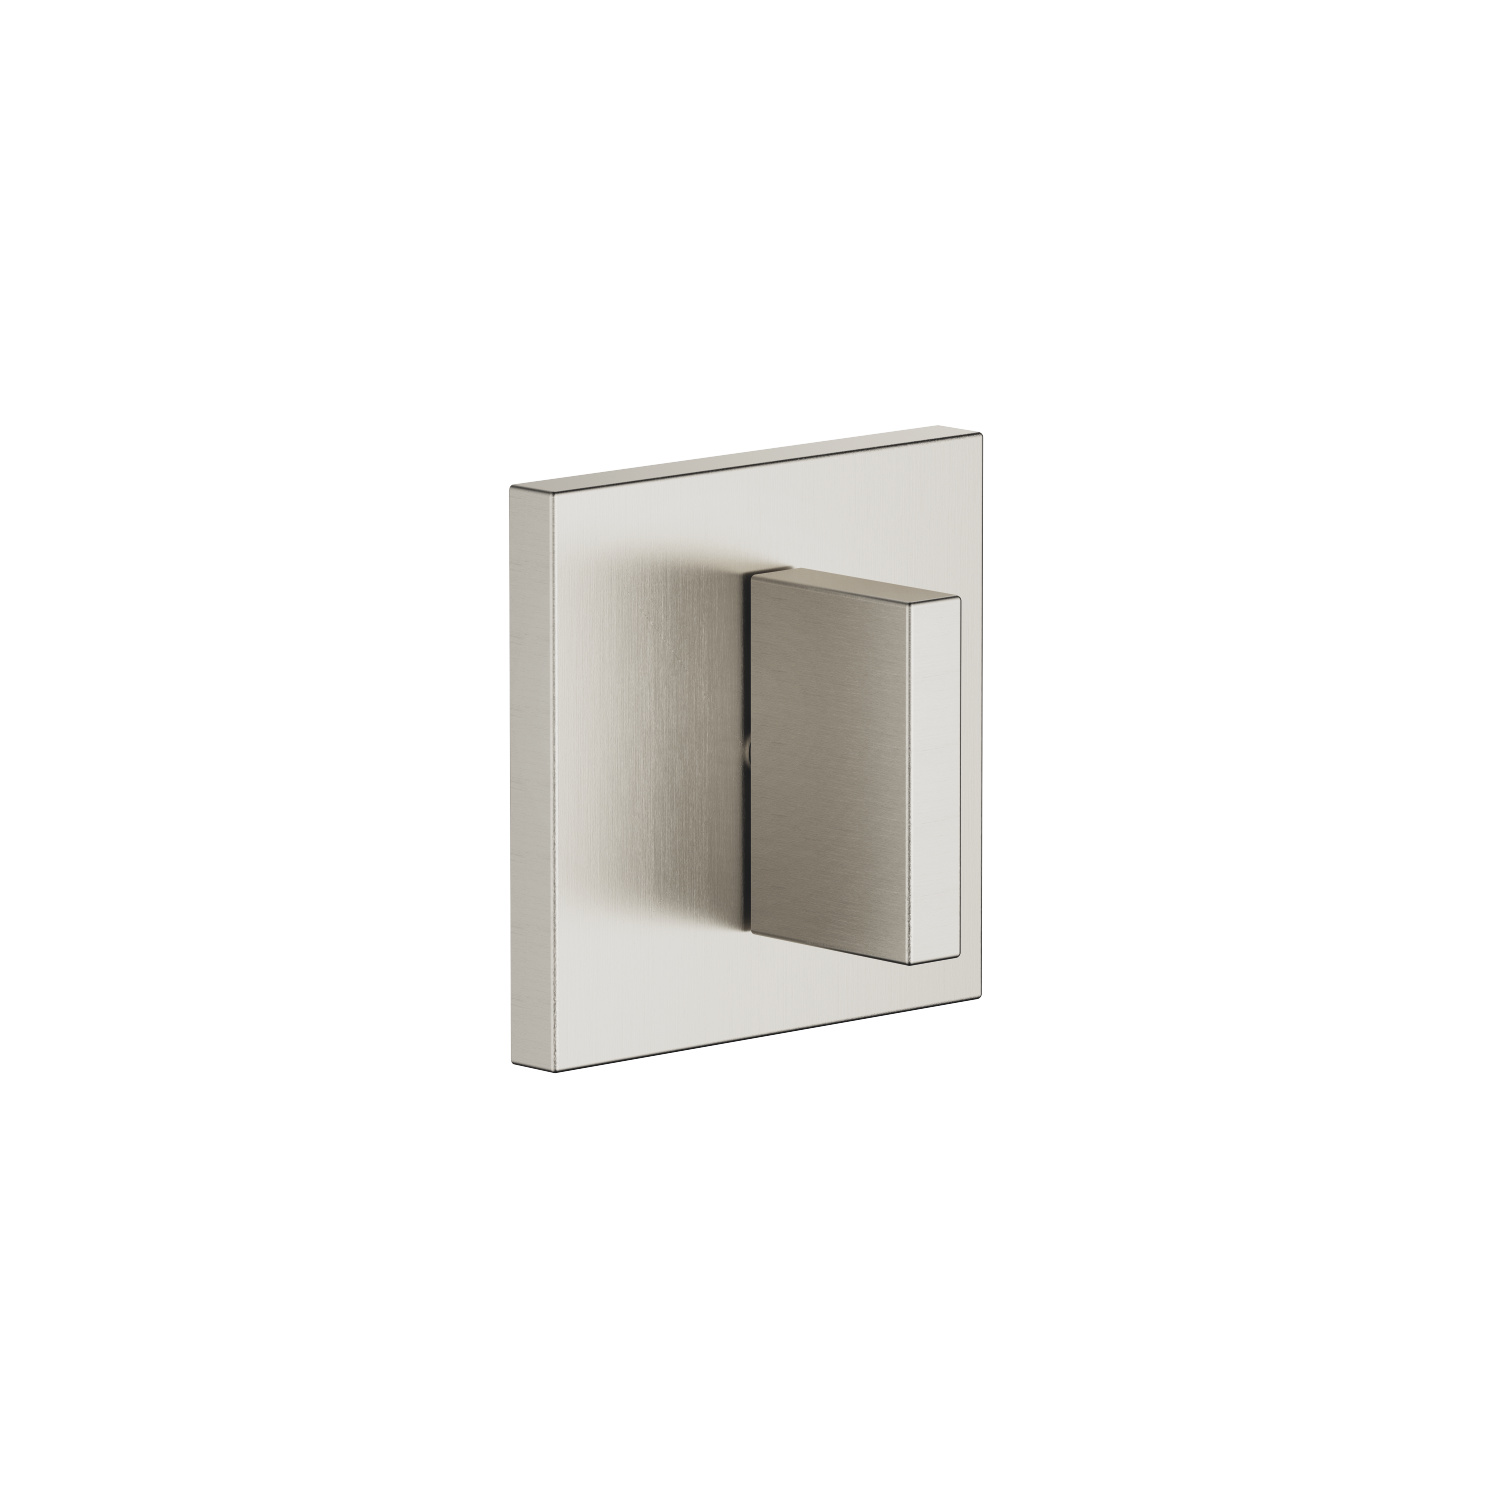 Concealed two- and three-way diverter - platinum matt